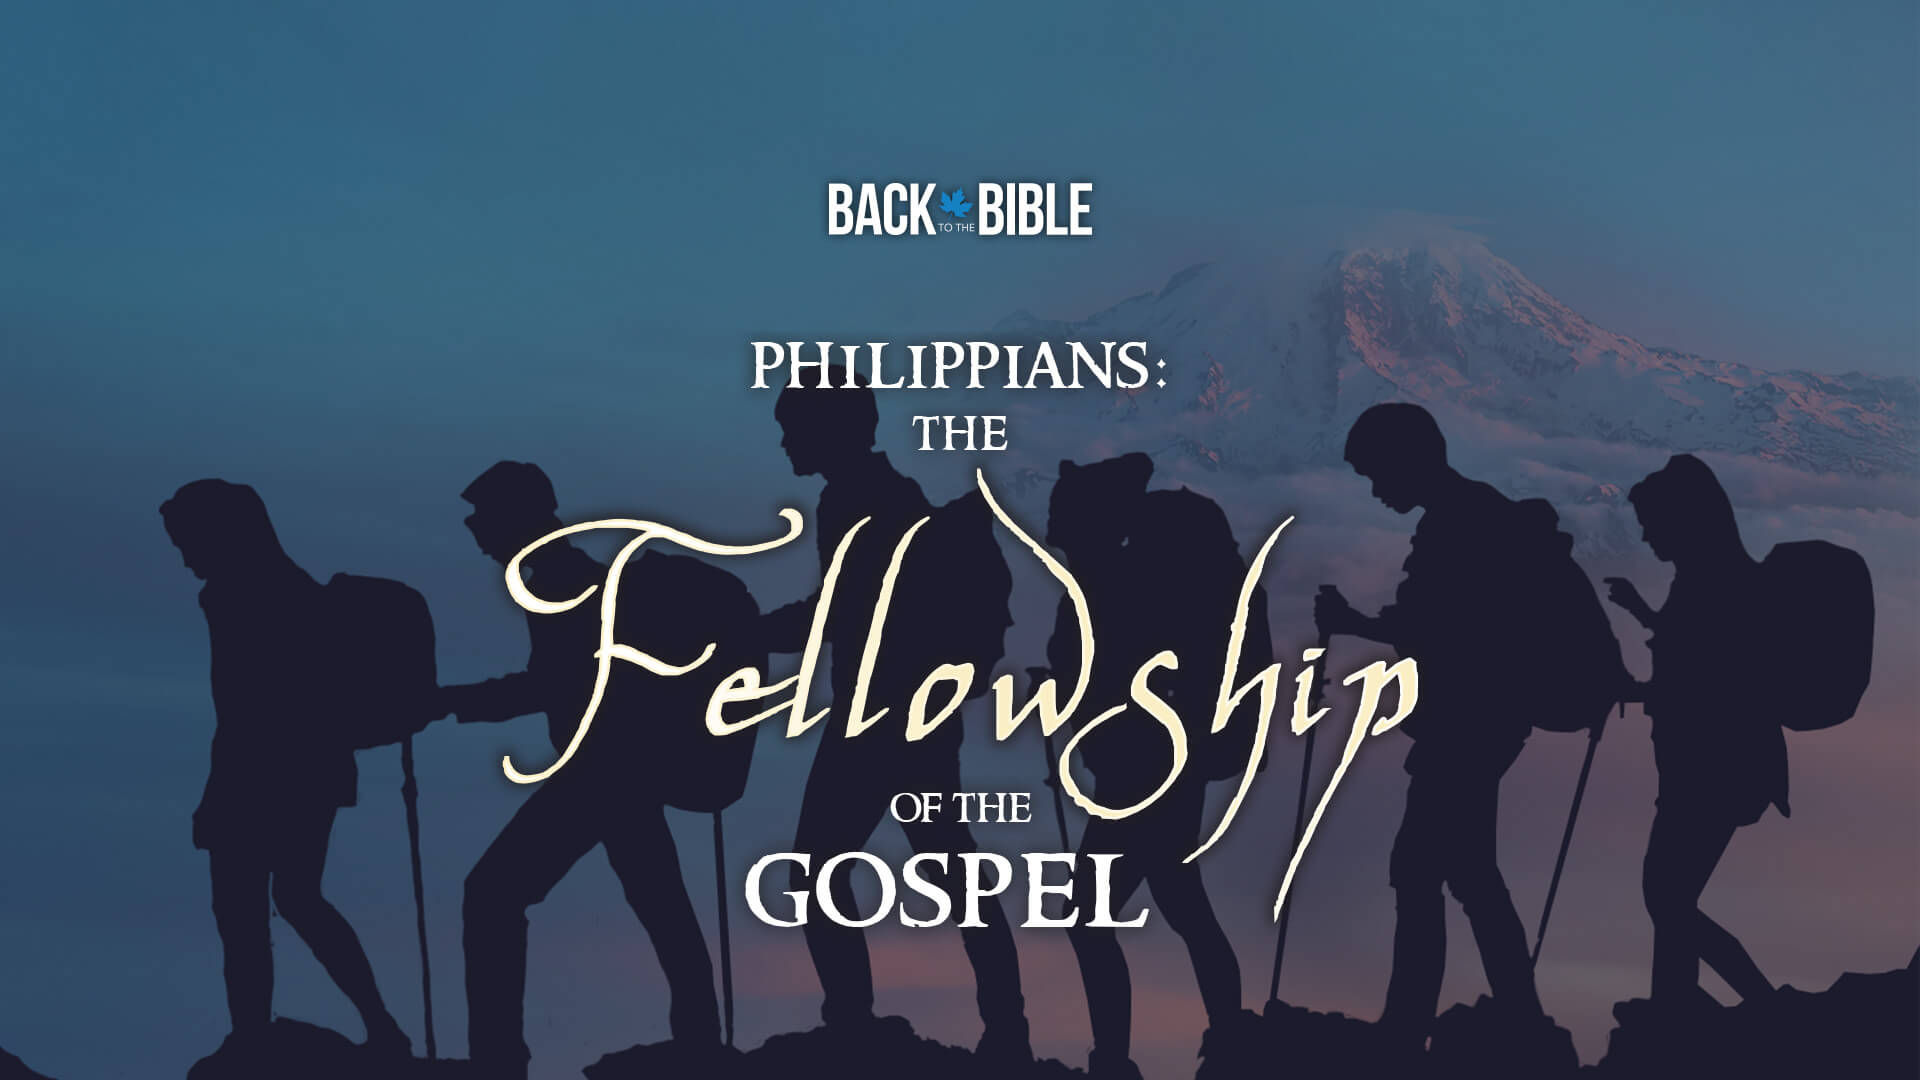 Philippians: The Fellowship of the Gospel | Back to the Bible Canada with Dr. John Neufeld